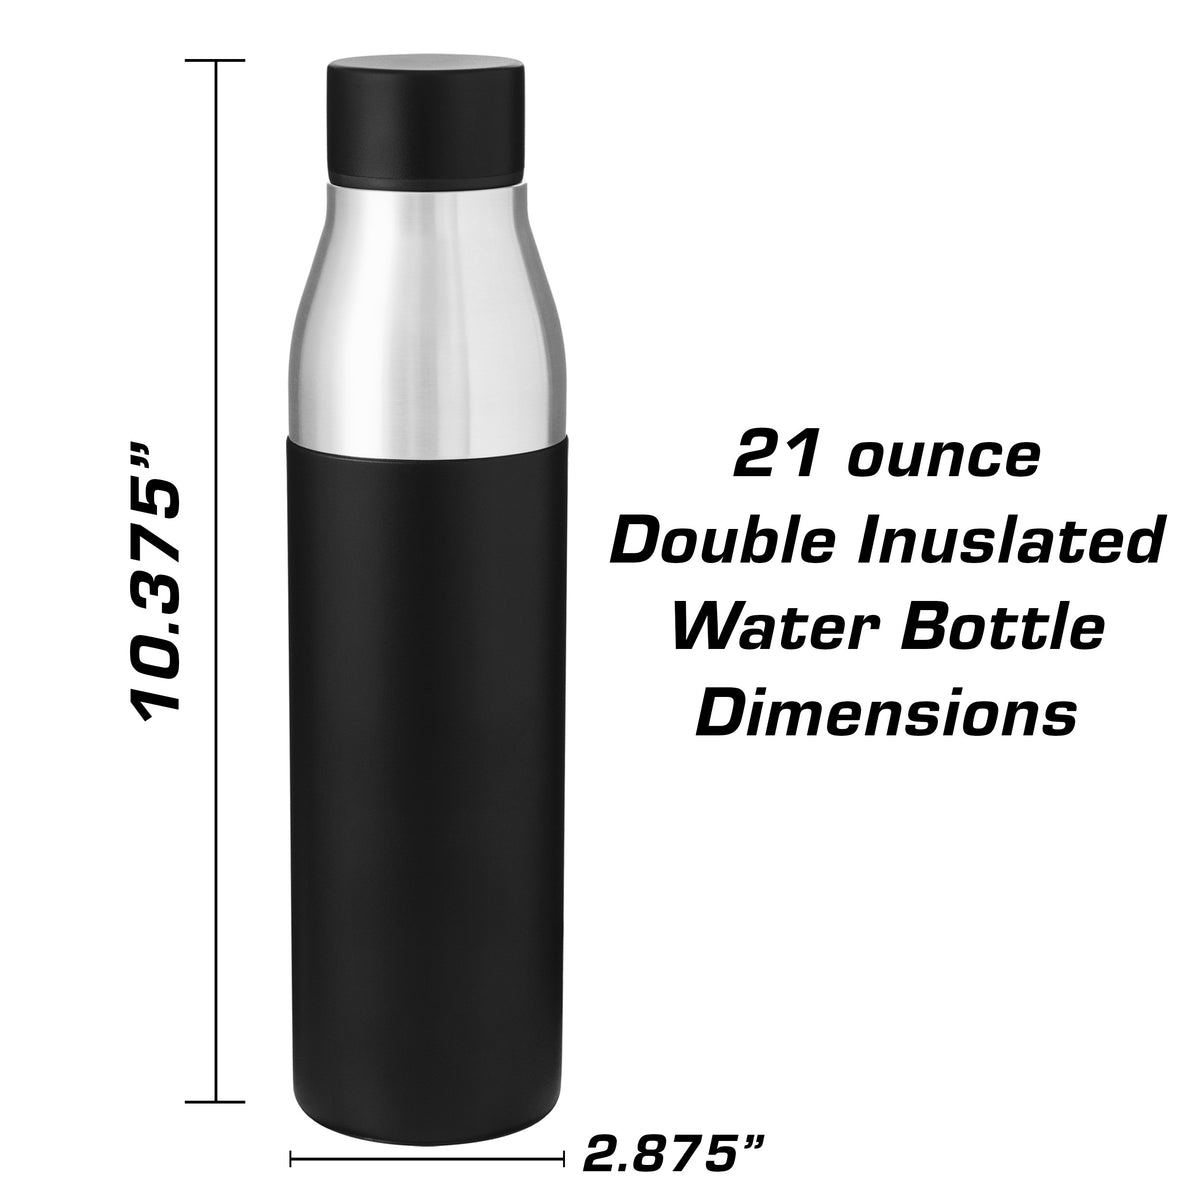 Acura Integra Type R Insulated Stainless Steel Water Bottle - 21 oz